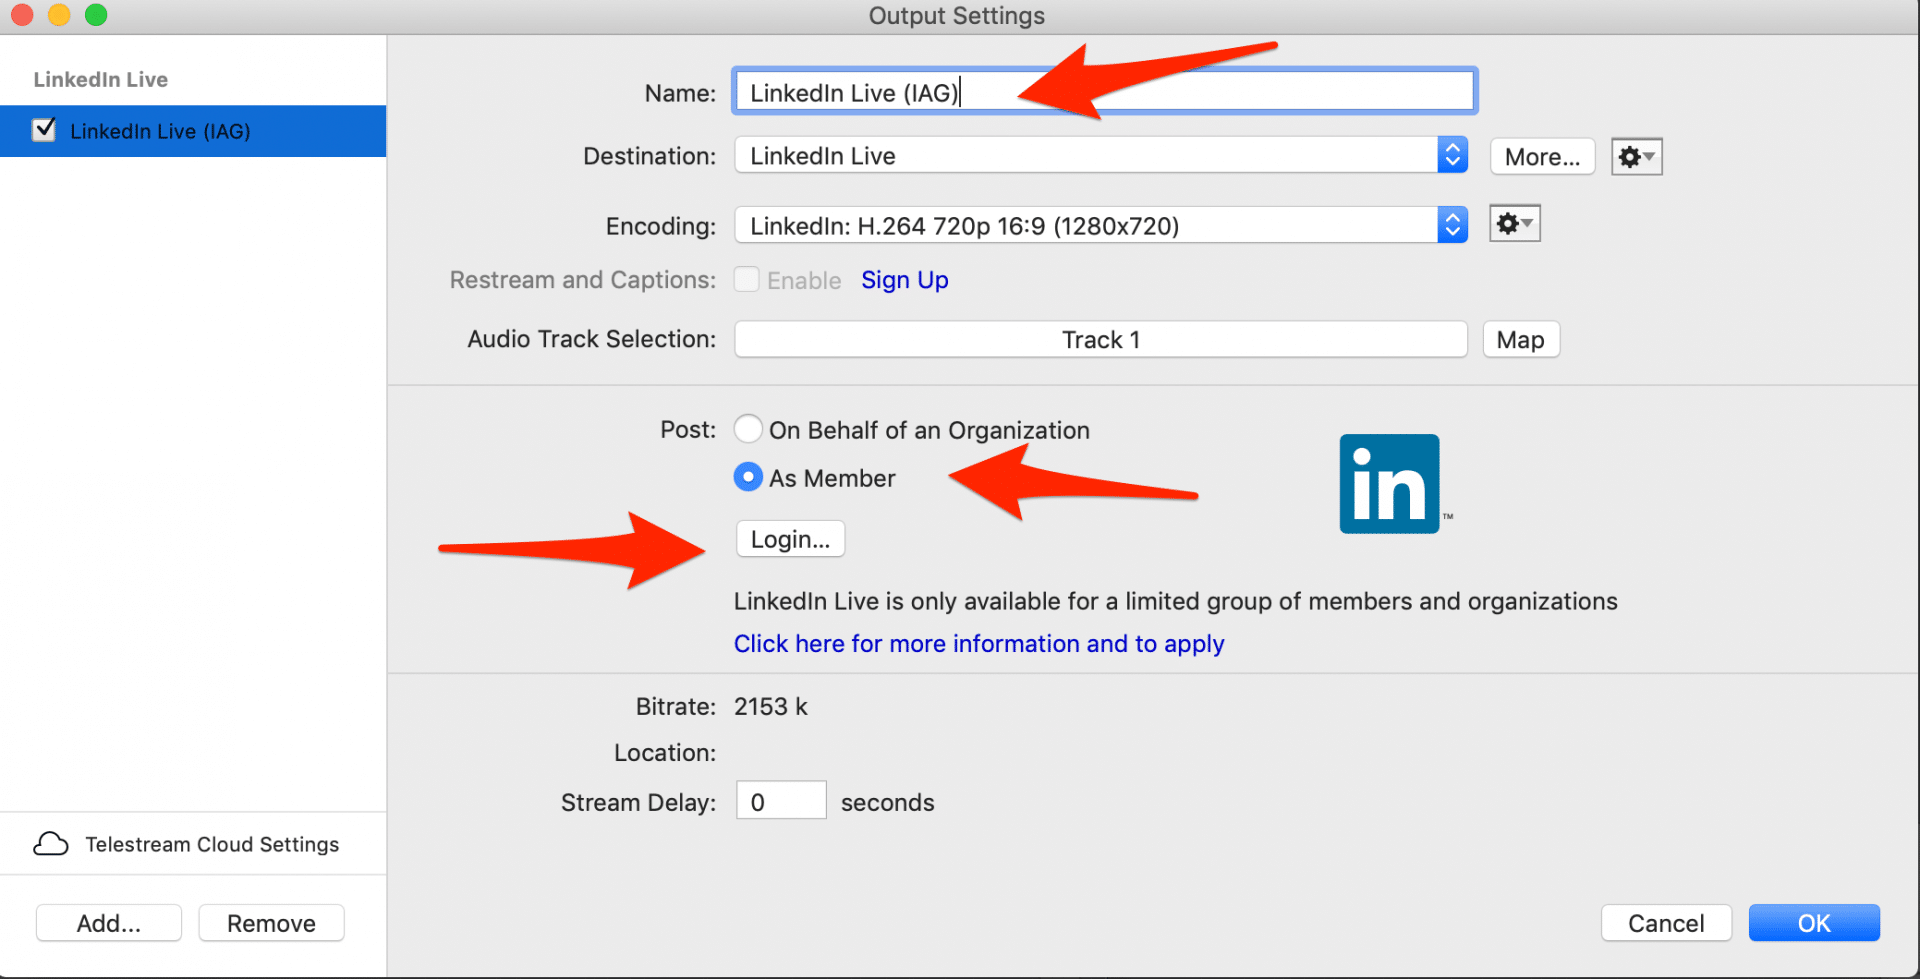 LinkedIn Live Settings in Wirecast